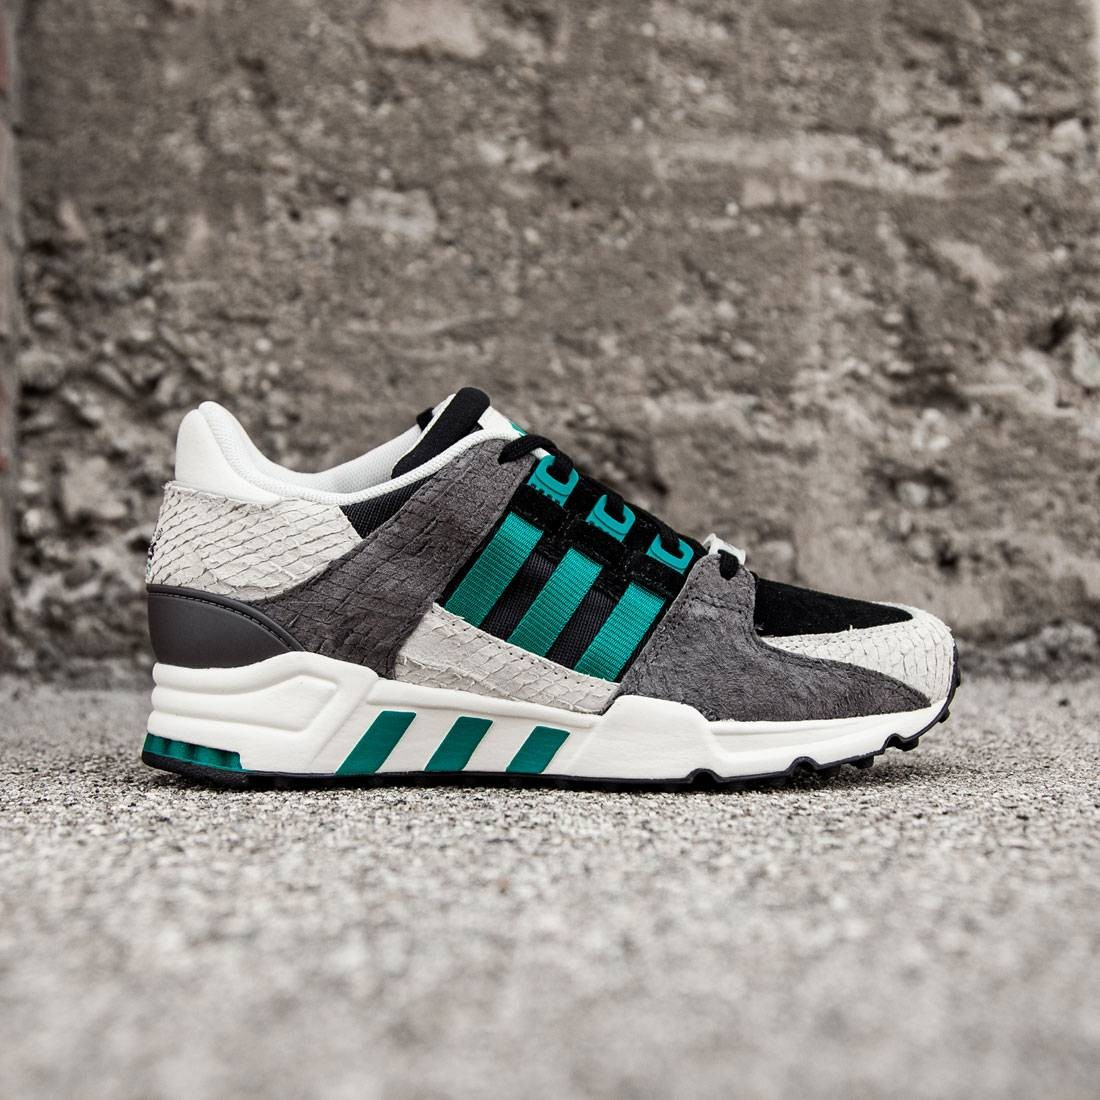 save off 12a1a f05e6 Adidas Women EQT Support 93 (black / core black / eqt green / off white)